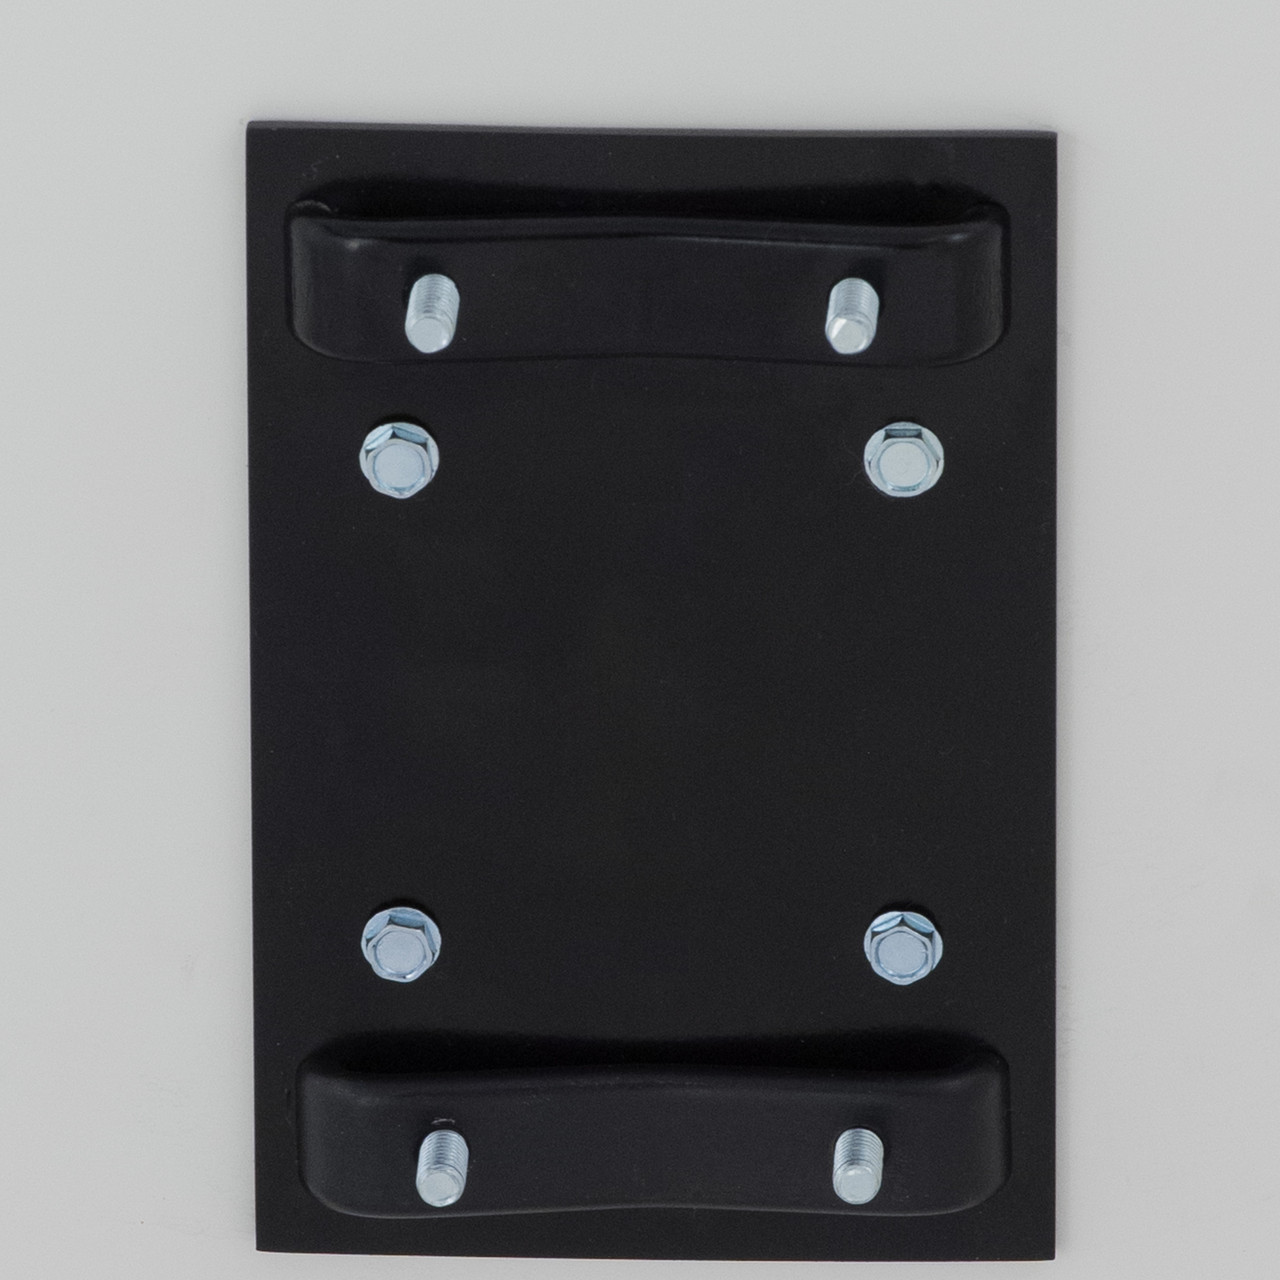 SATIN BLACK WALL BRACKET